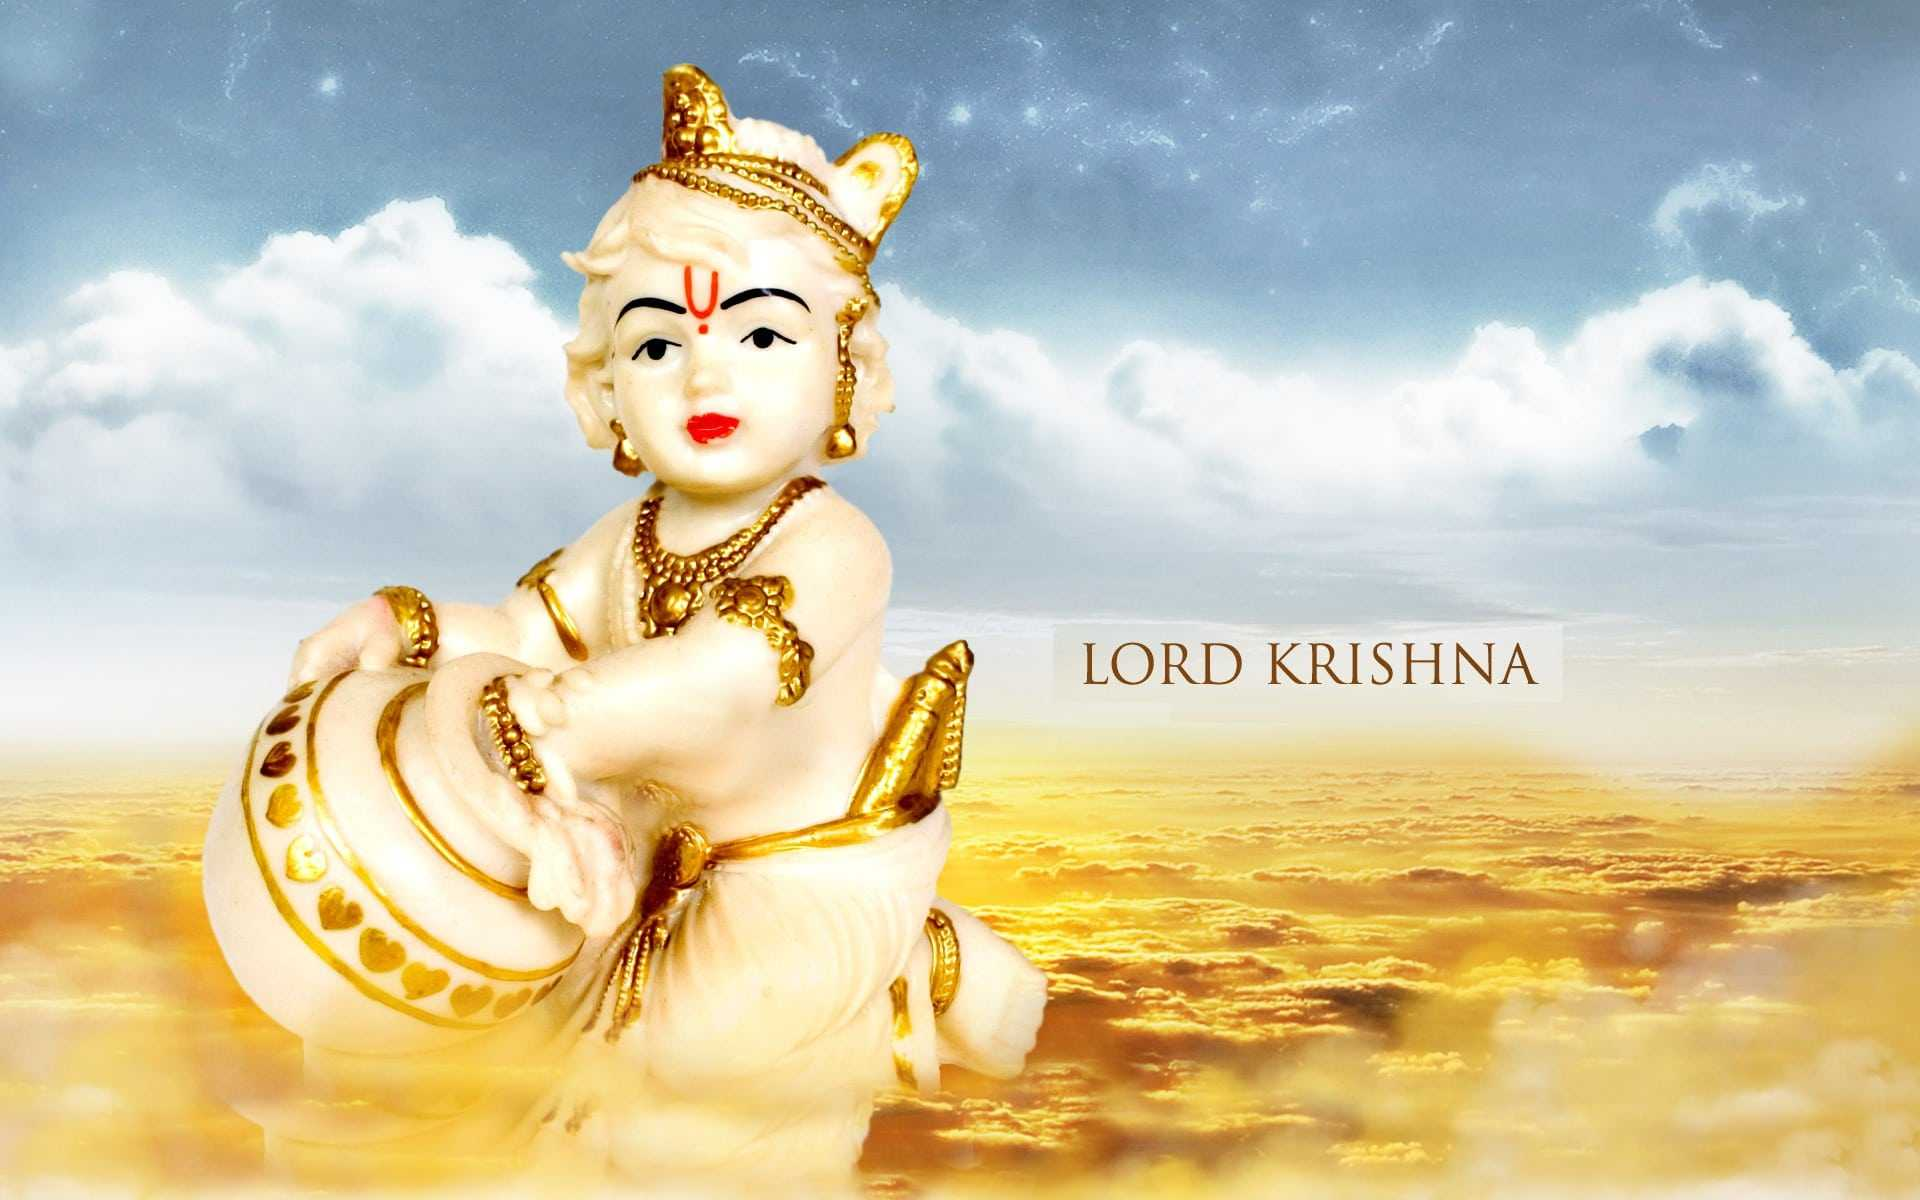 Lord krishna wallpaper full size